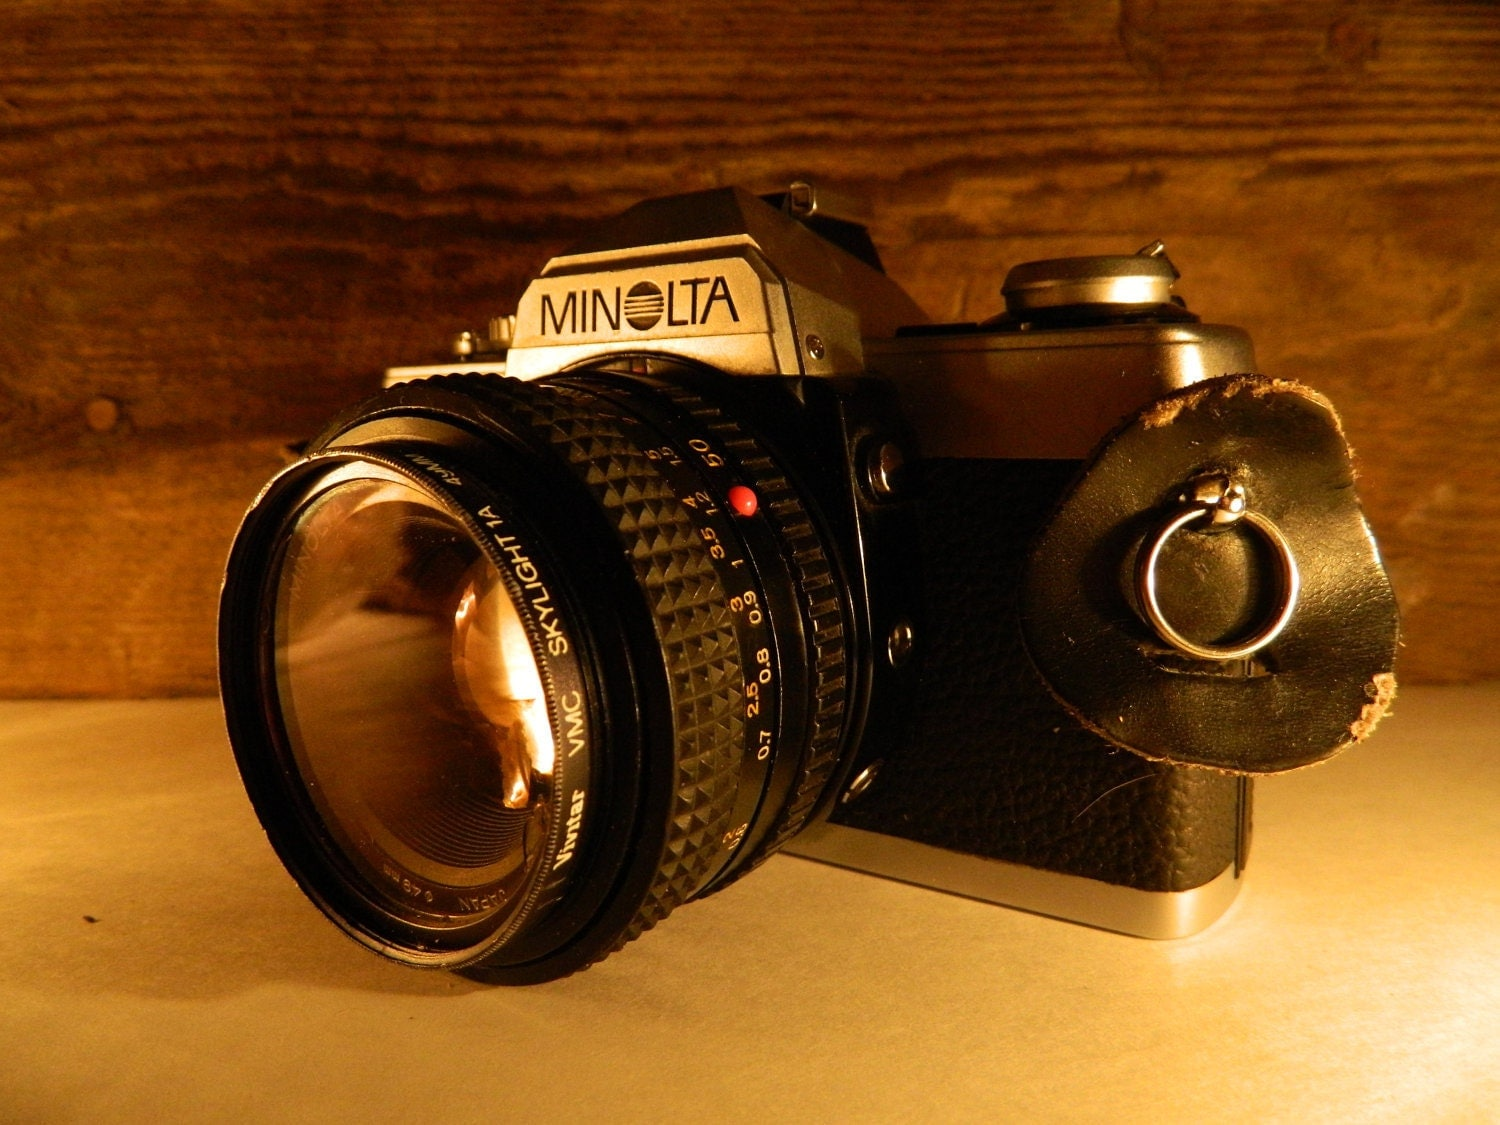 Vintage Minolta XG-1 Series Film Camera